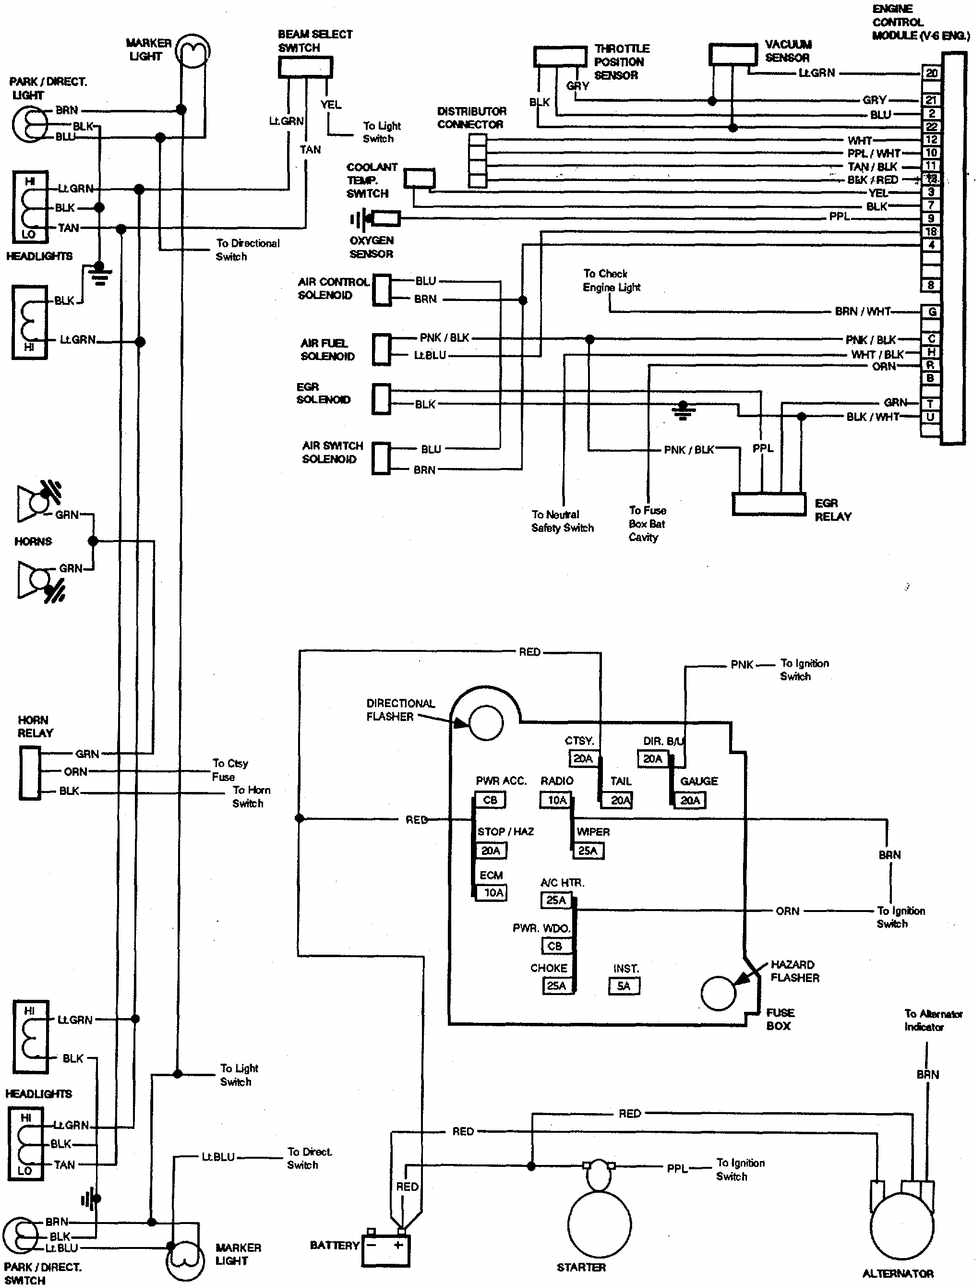 72 Chevy Truck Dash Cluster Wiring Diagram on 1995 mustang under dash fuse box